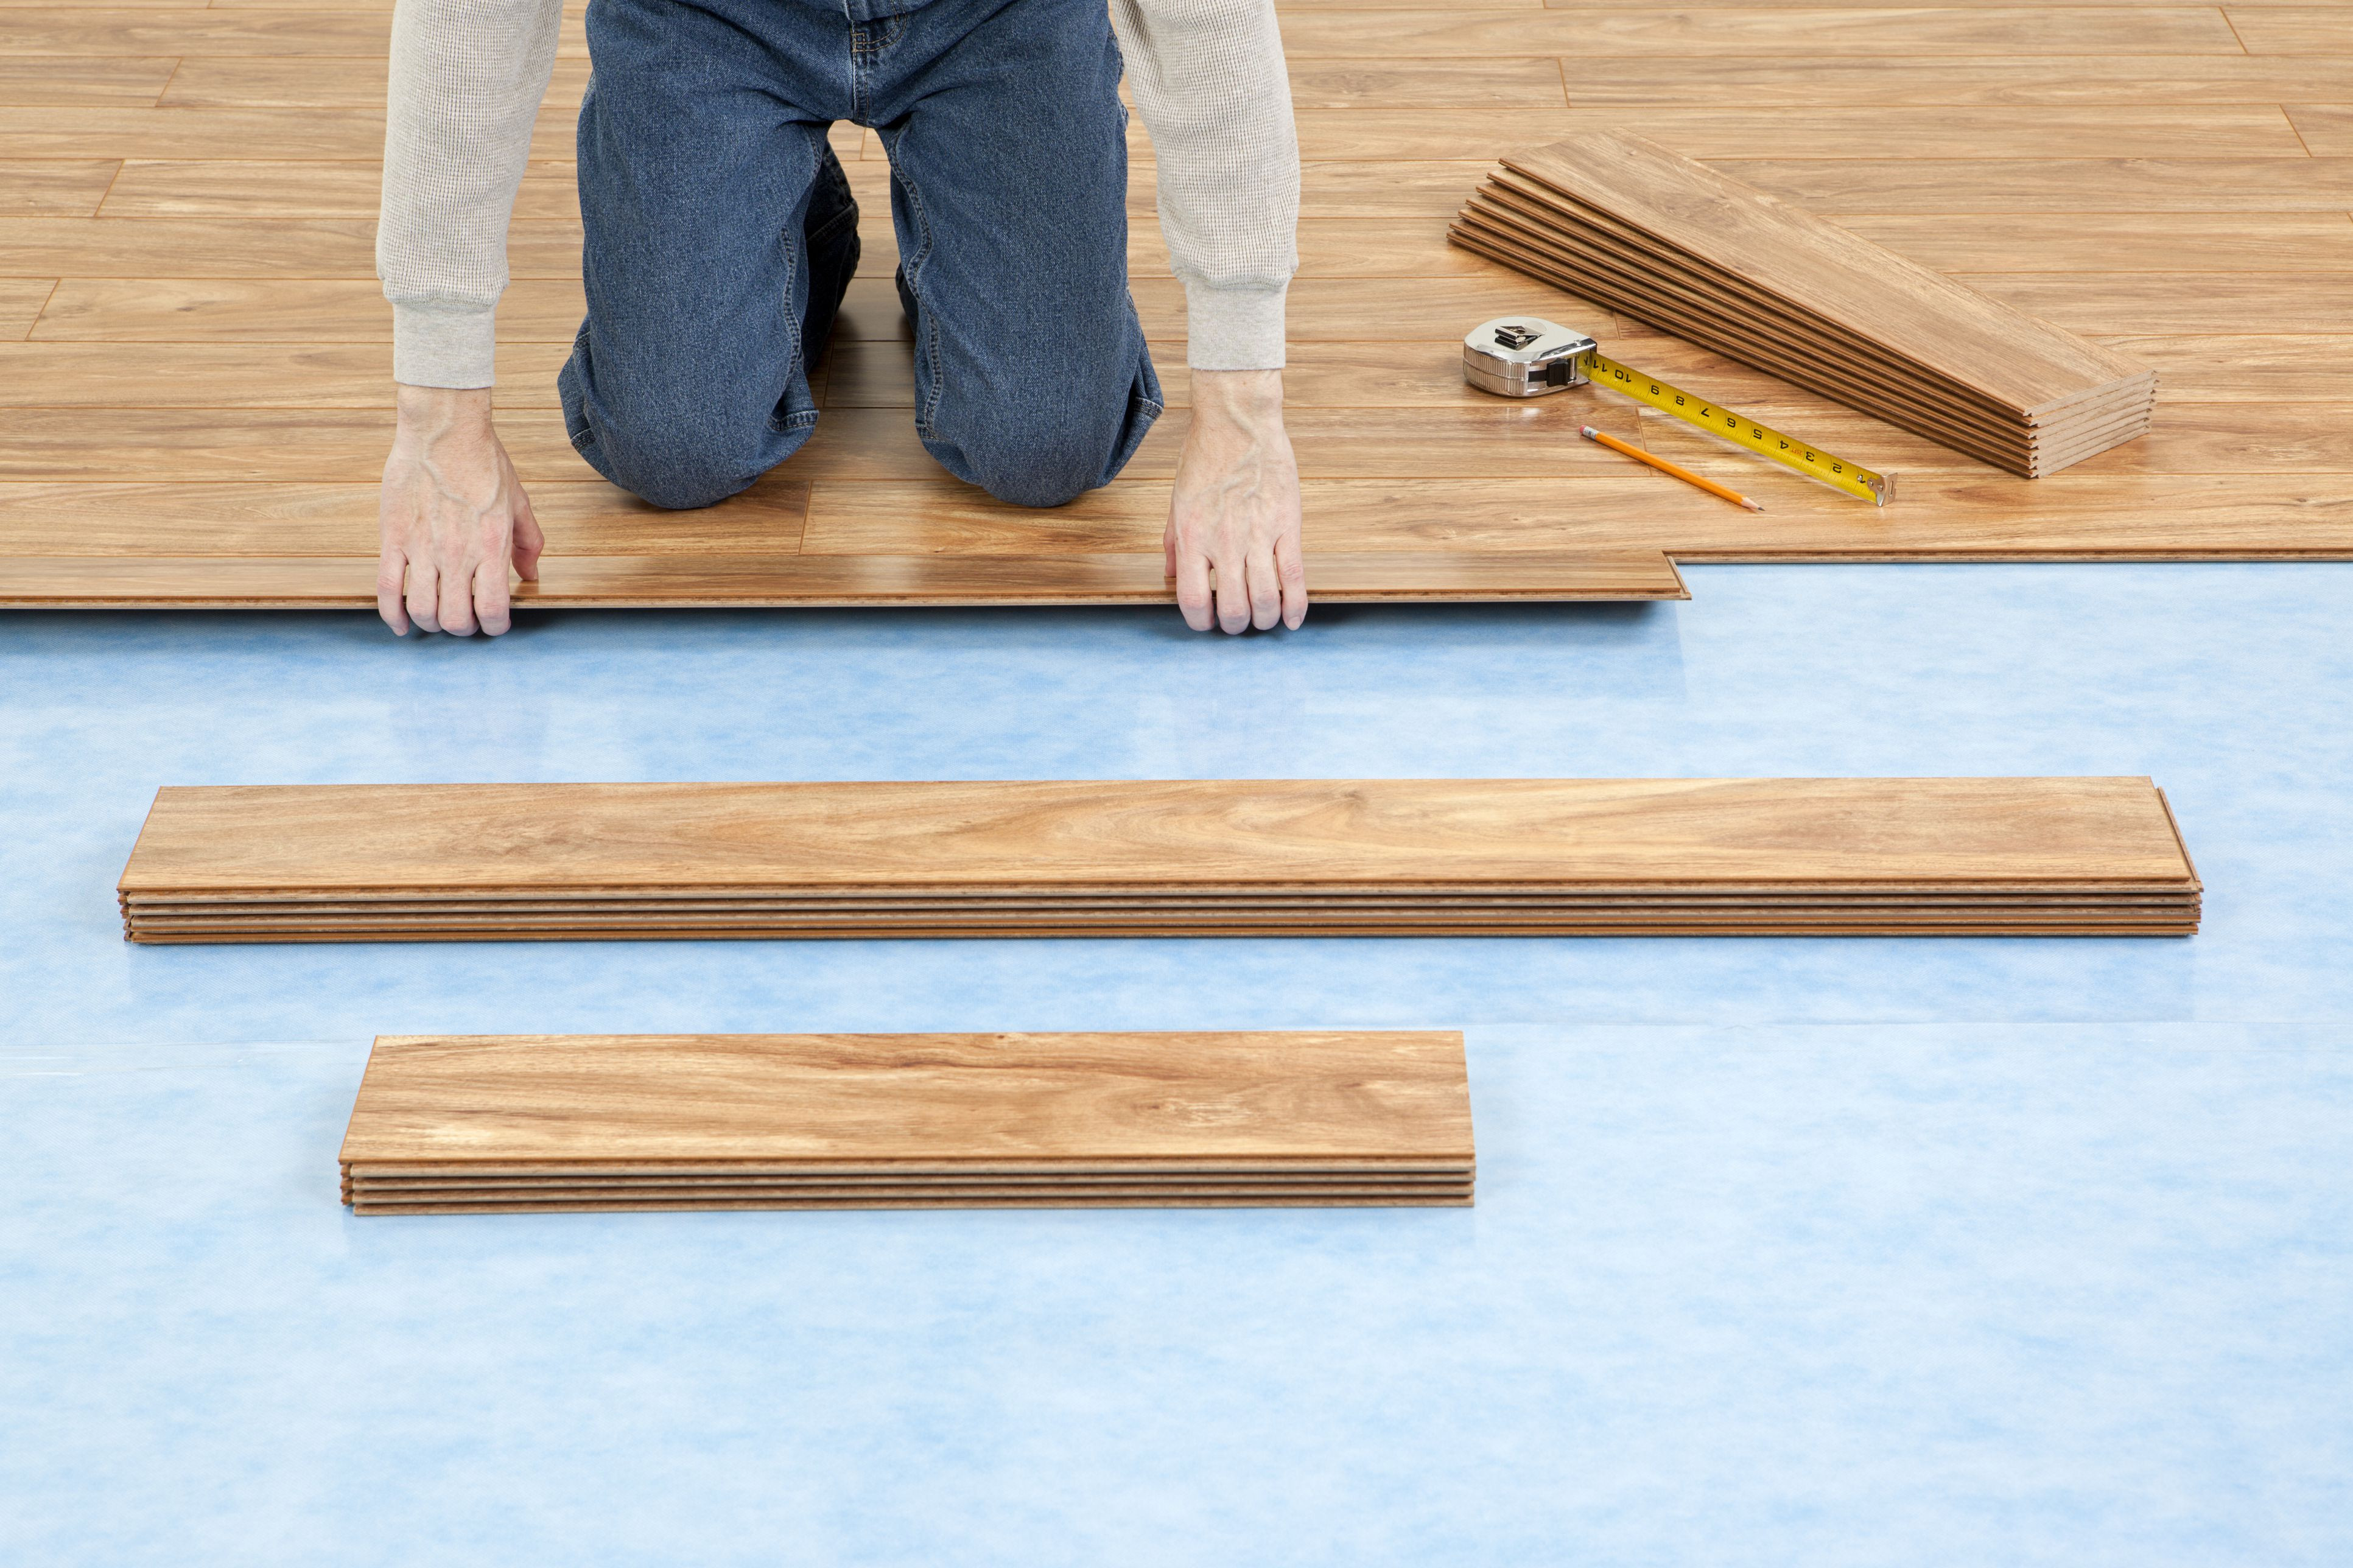 hardwood floor estimate template of installing laminate flooring with attached underlayment within new floor installation 155283725 582735c03df78c6f6af8ac80